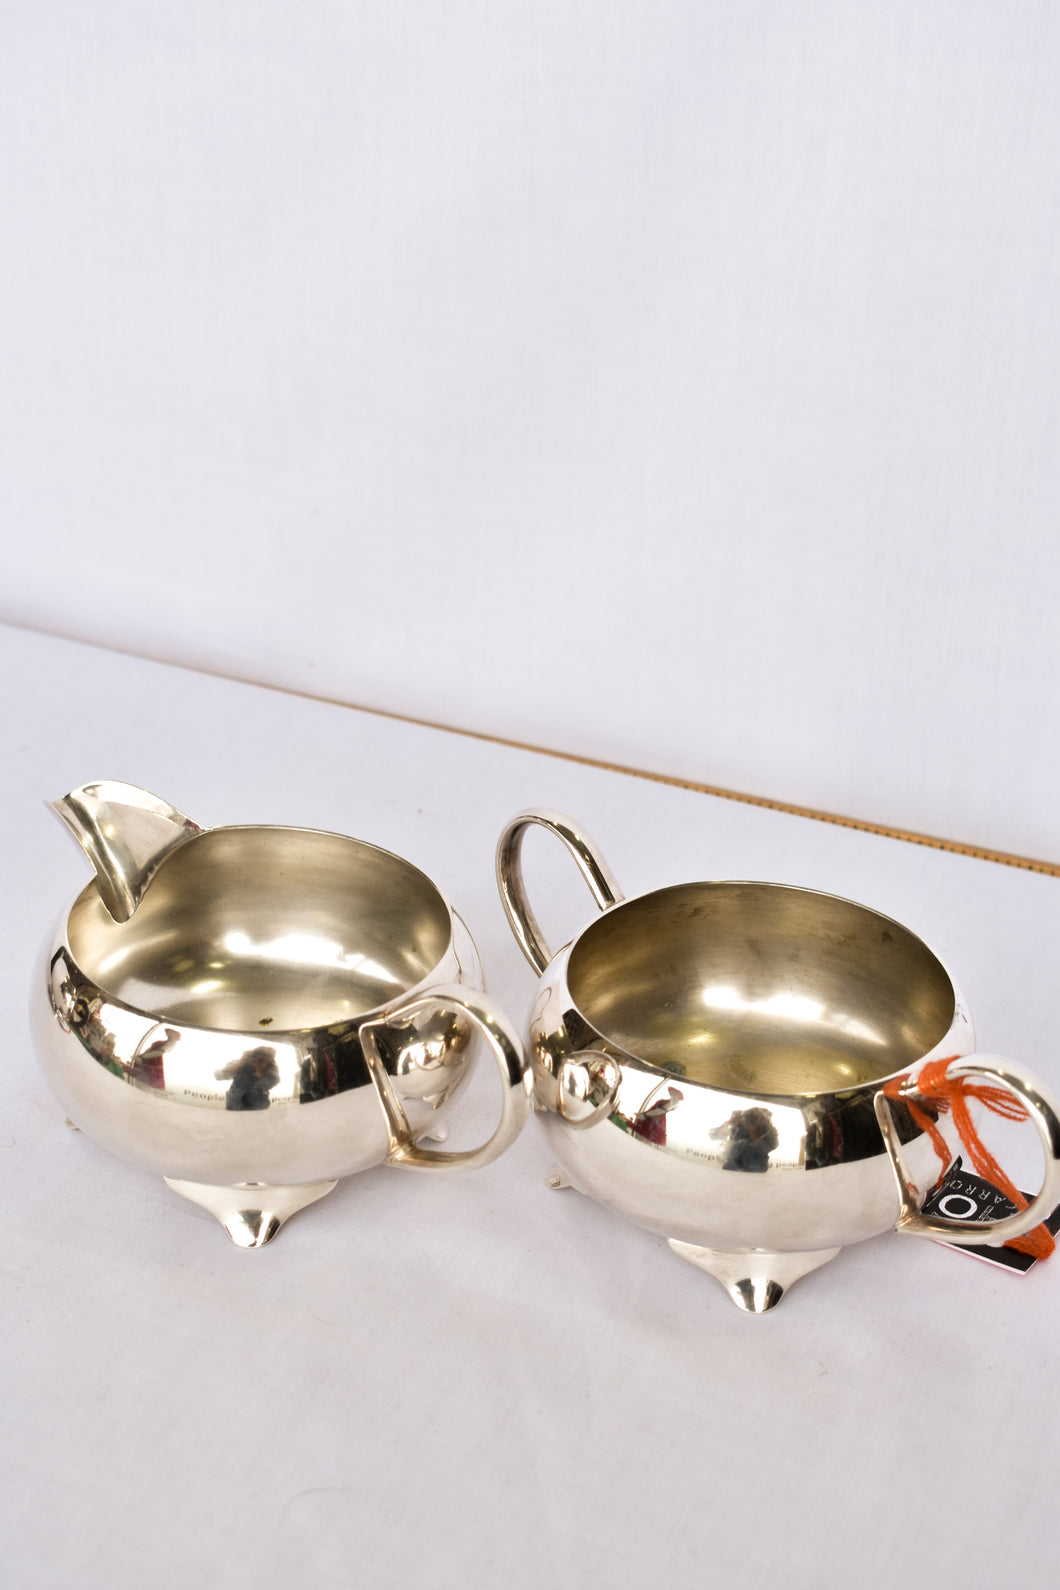 2 piece stainless steel milk jug and sugar bowl